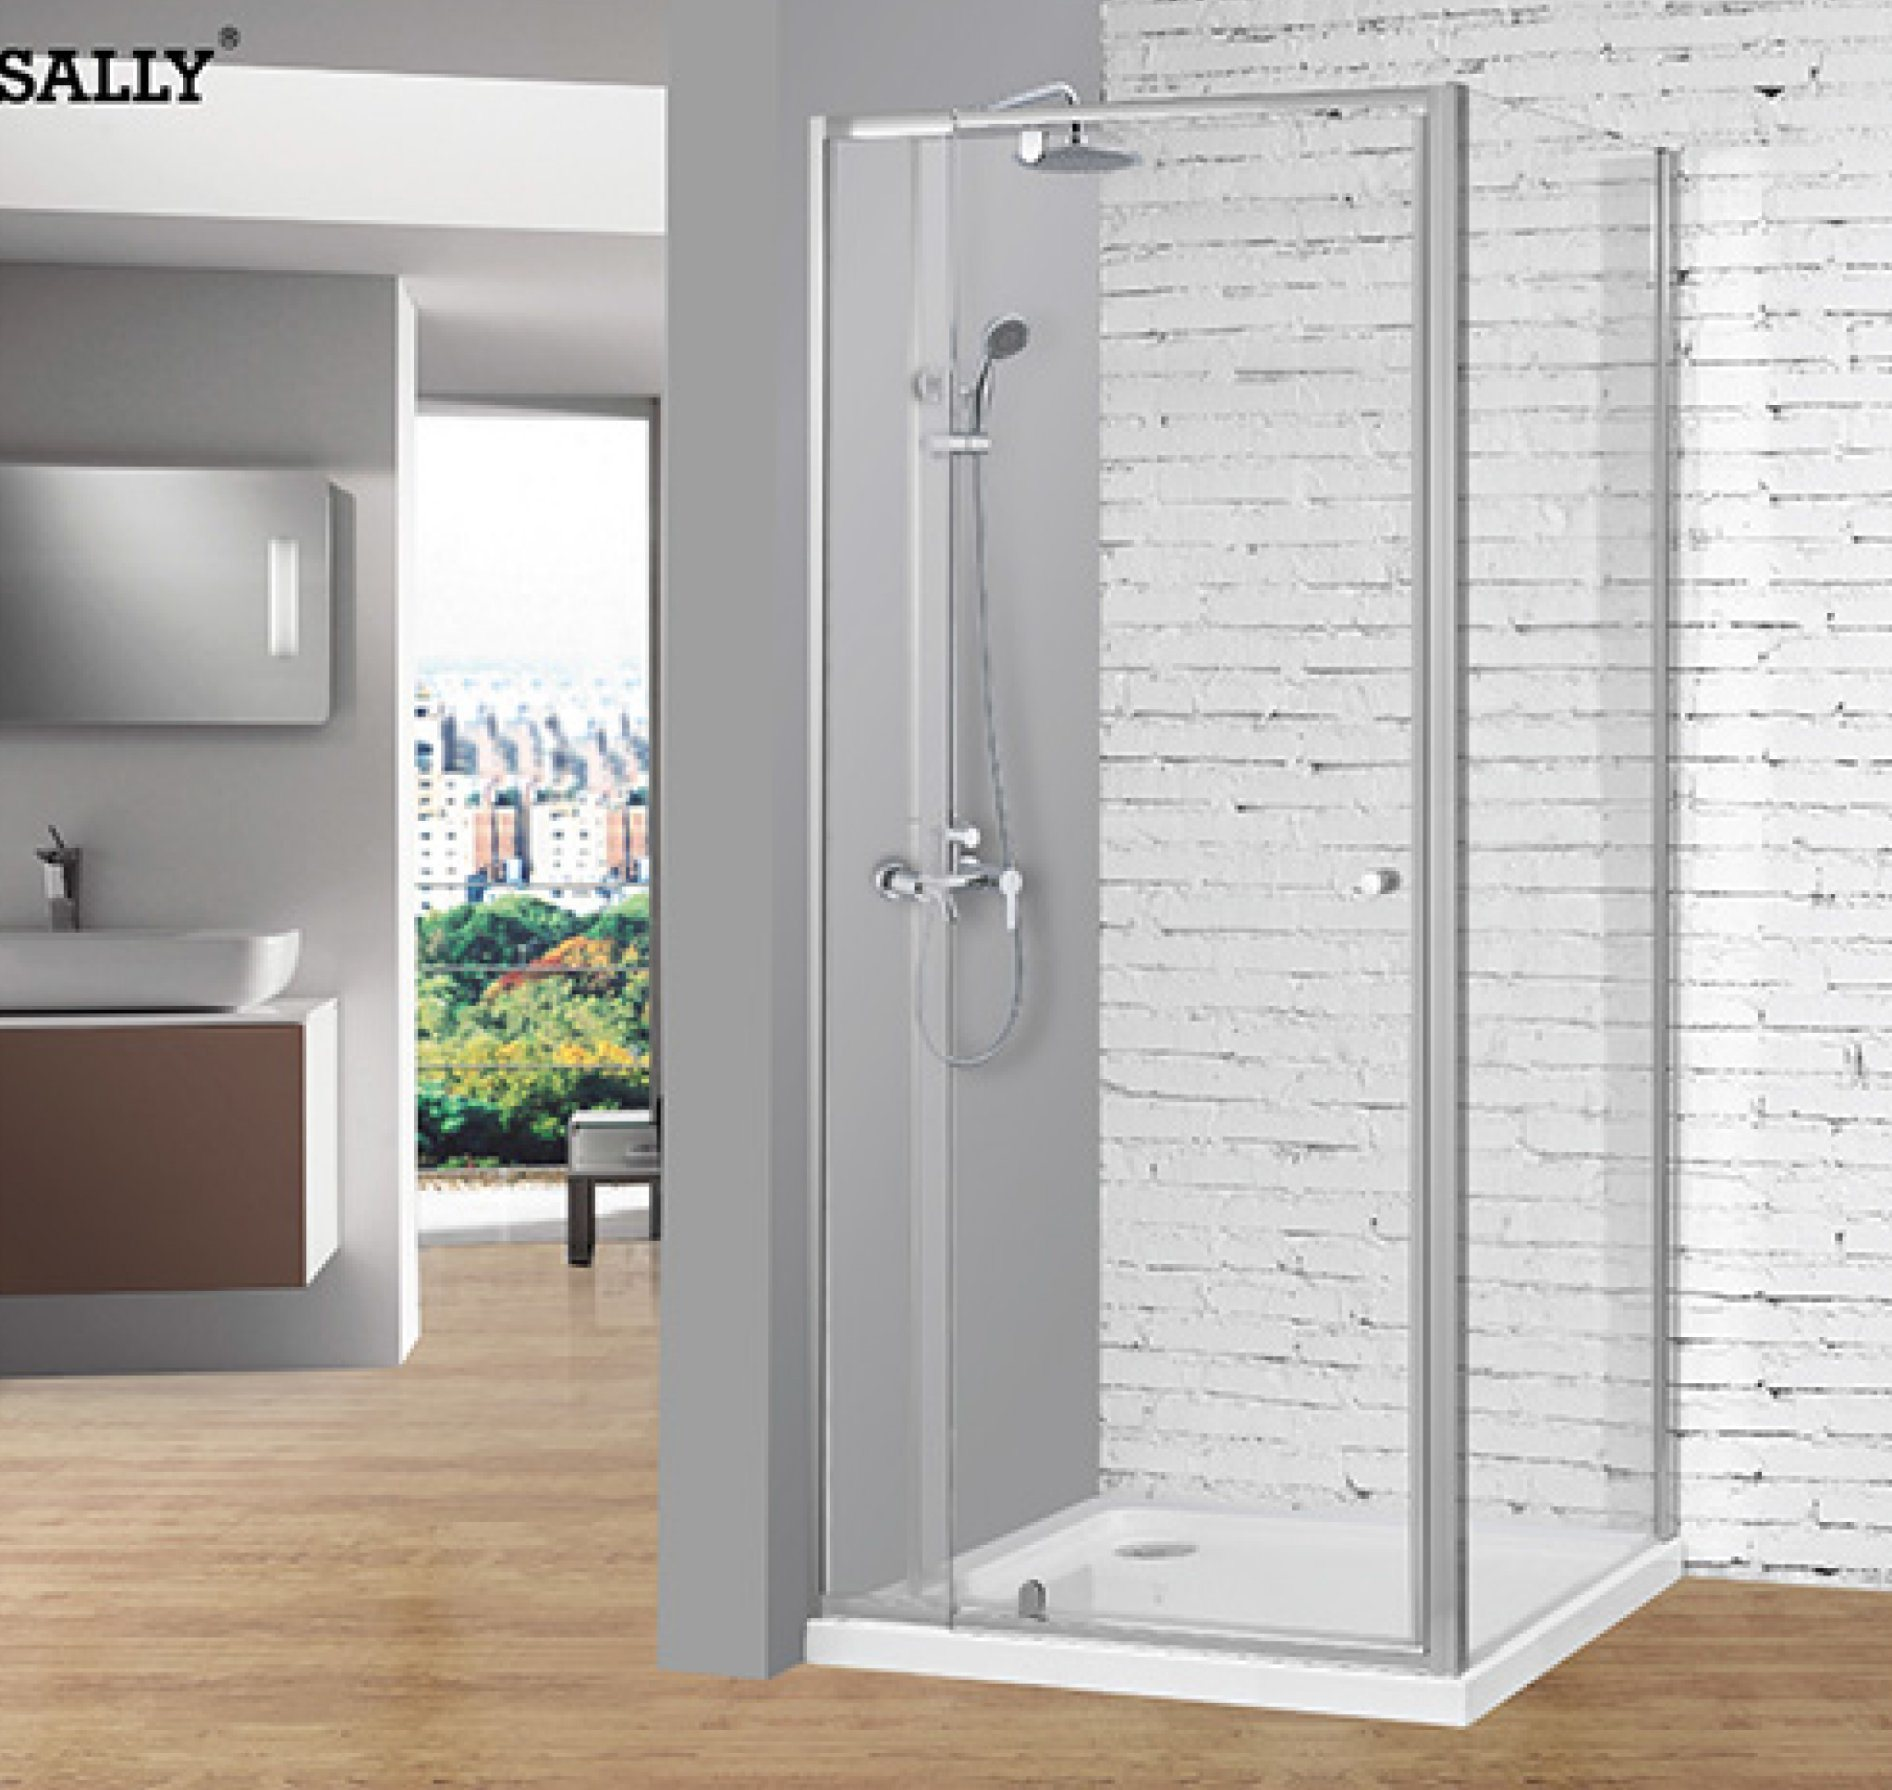 Hot Item Sally Telescopic Pivot Door Of 6mm Tempered Glass Hinge Shower Door With Big Adjustment